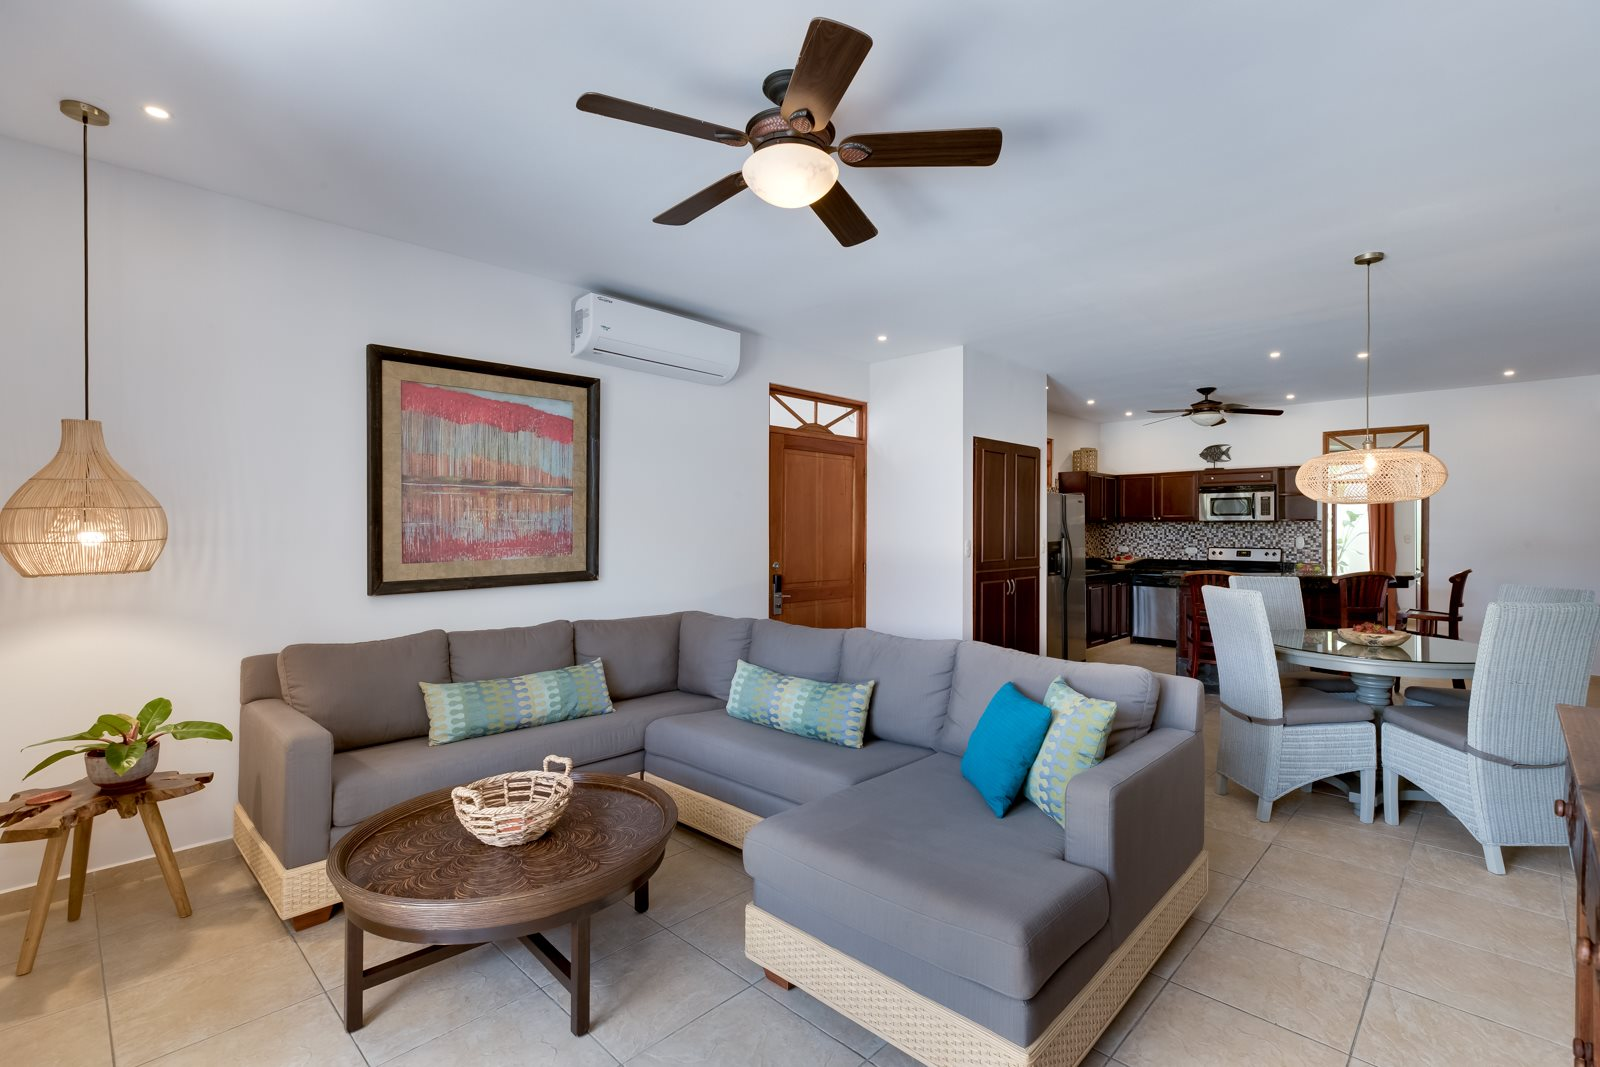 Paloma Blanca 3 Bedroom 3 Bath Condo with Financing! Furnished and Turn Key